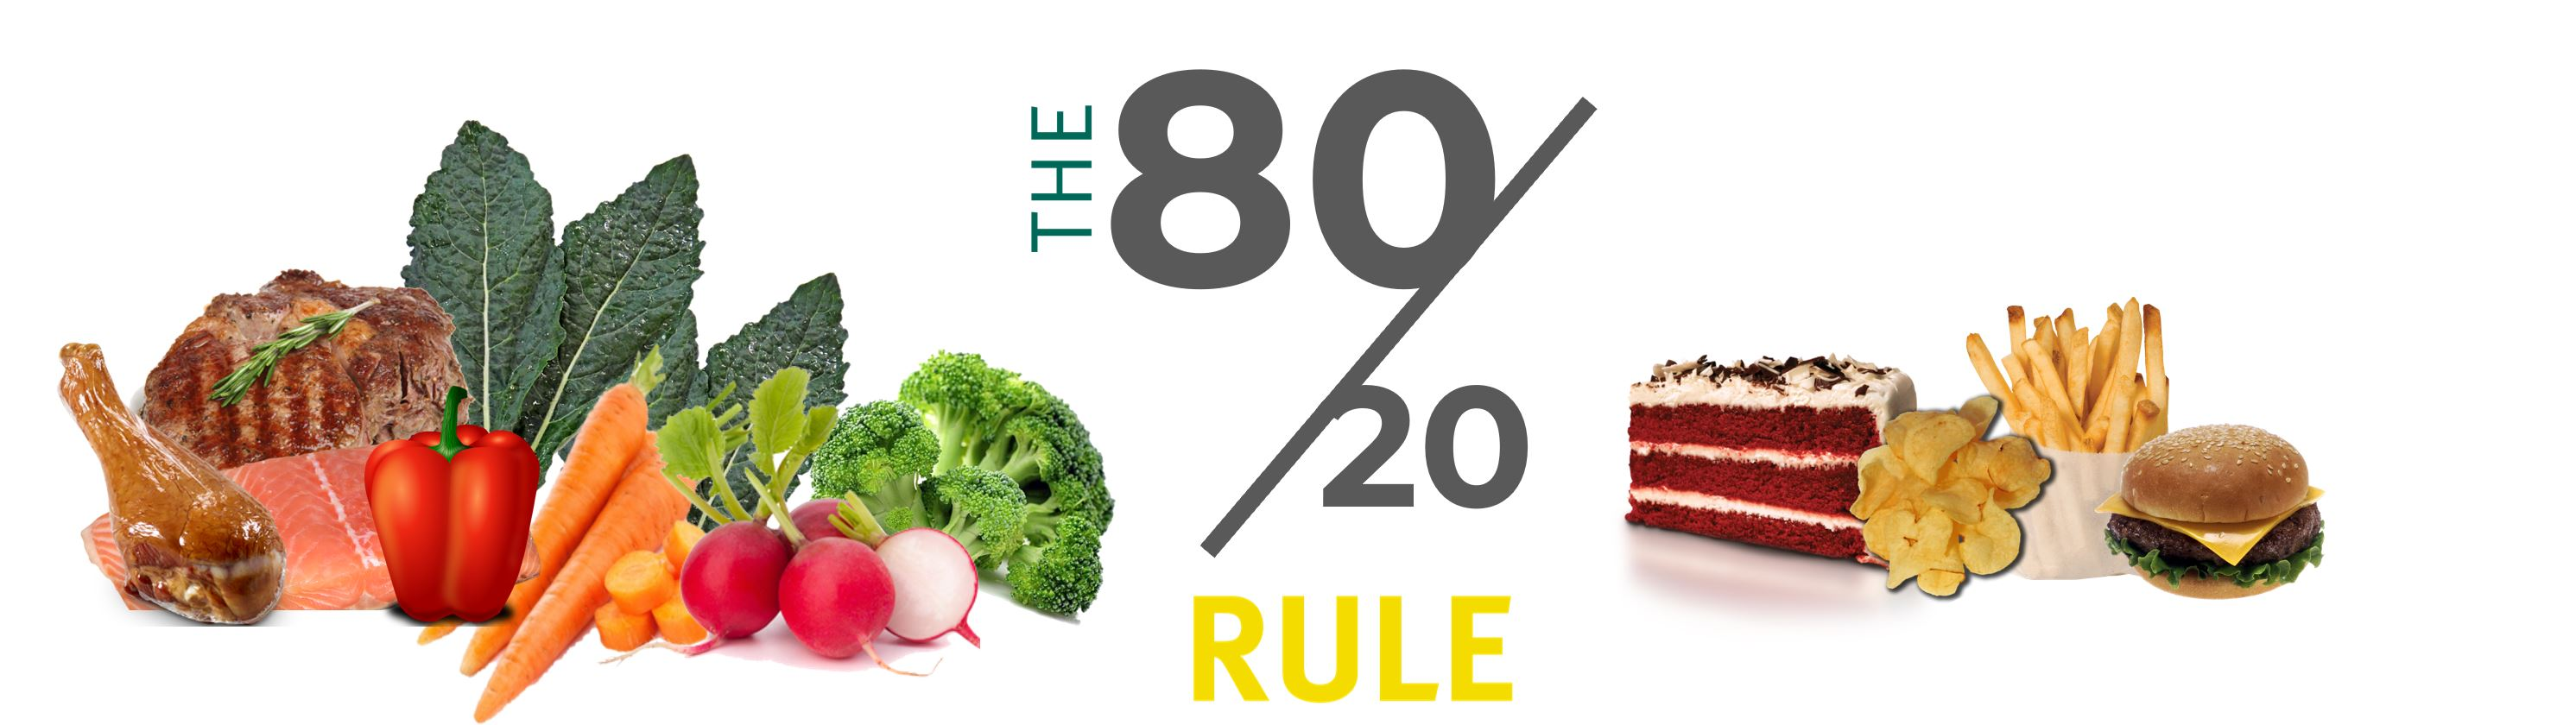 Dieting 80/20 Rule: Strive to keep 80% of your intake on track, while giving yourself 20% of wiggle room